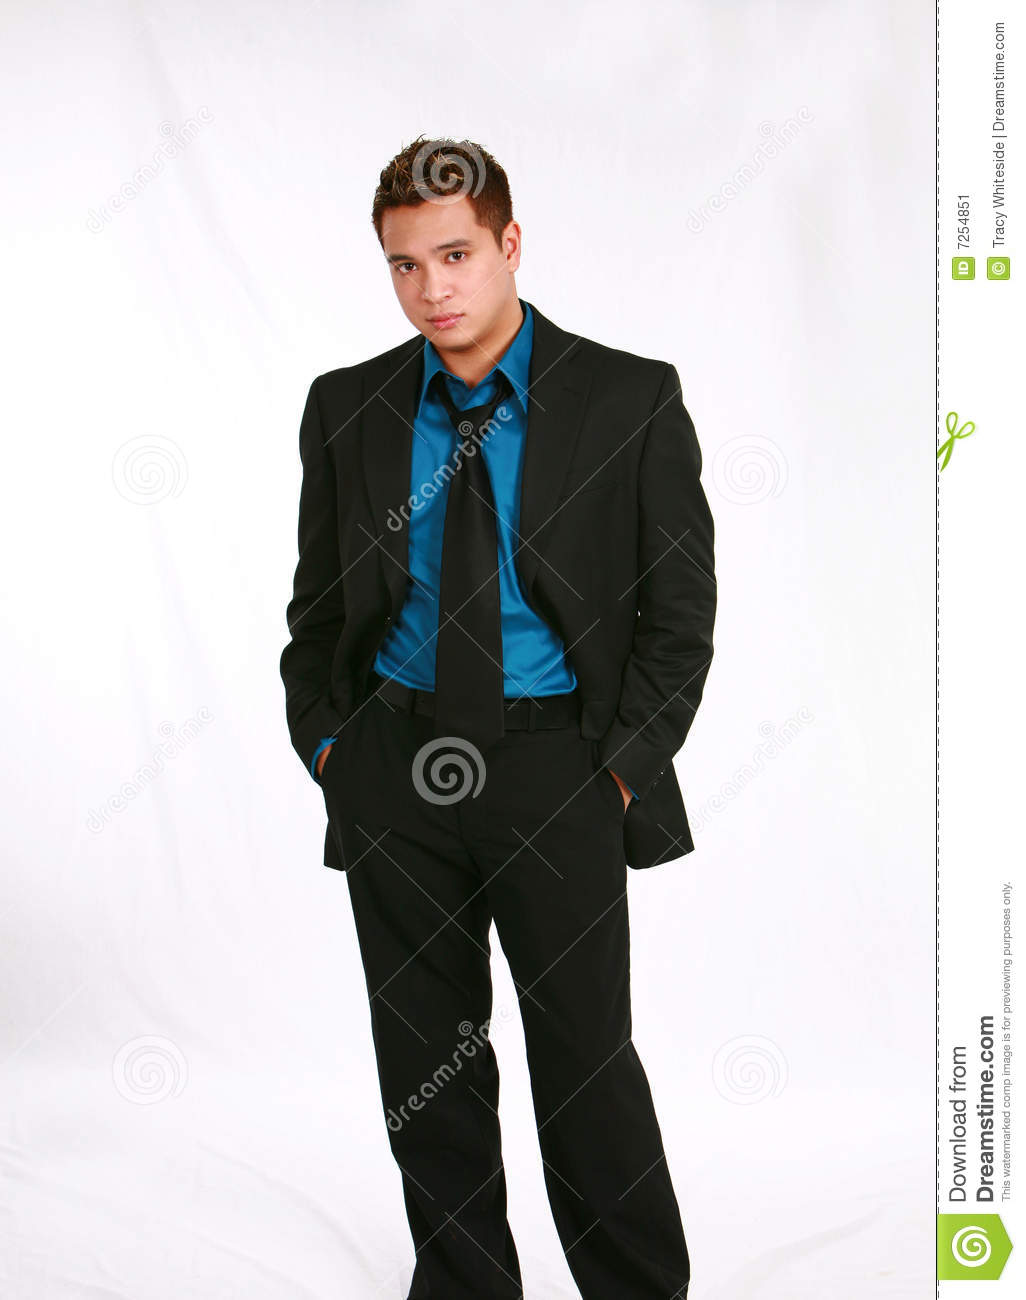 Asian man in suit photo 567